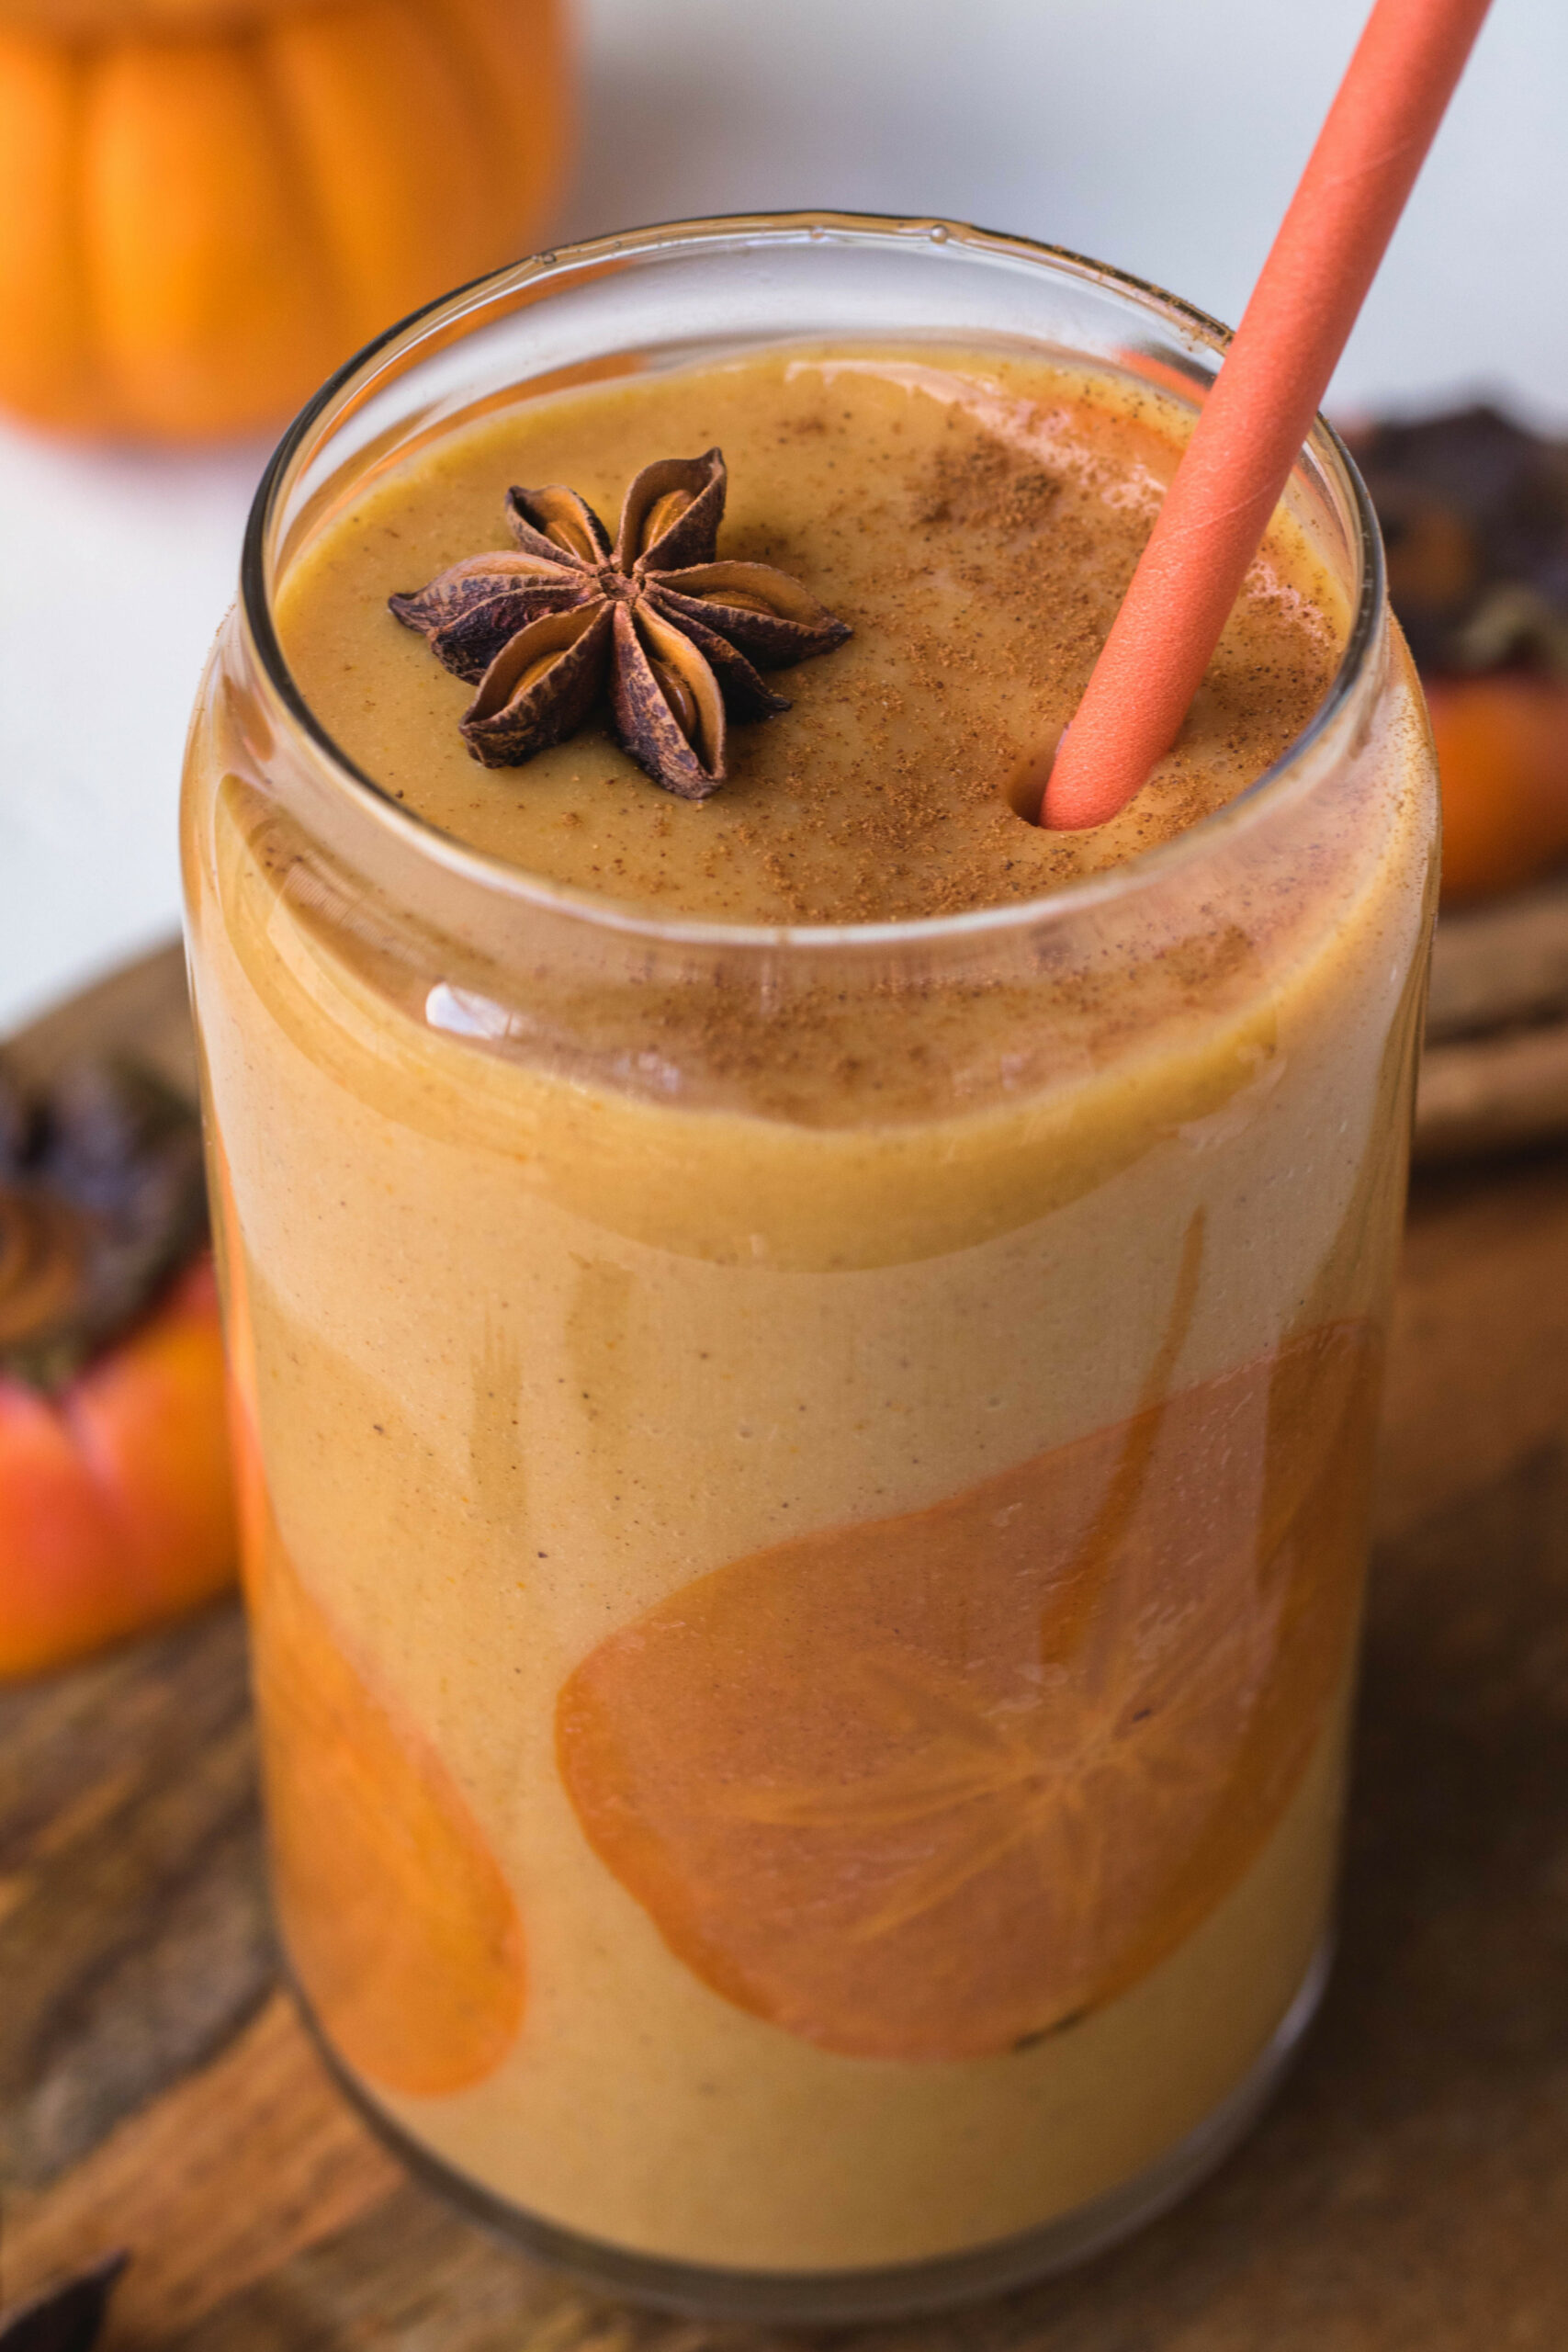 Healthy Persimmon Smoothie | Lifestyle Of A Foodie - Recipes Of Healthy Drinks